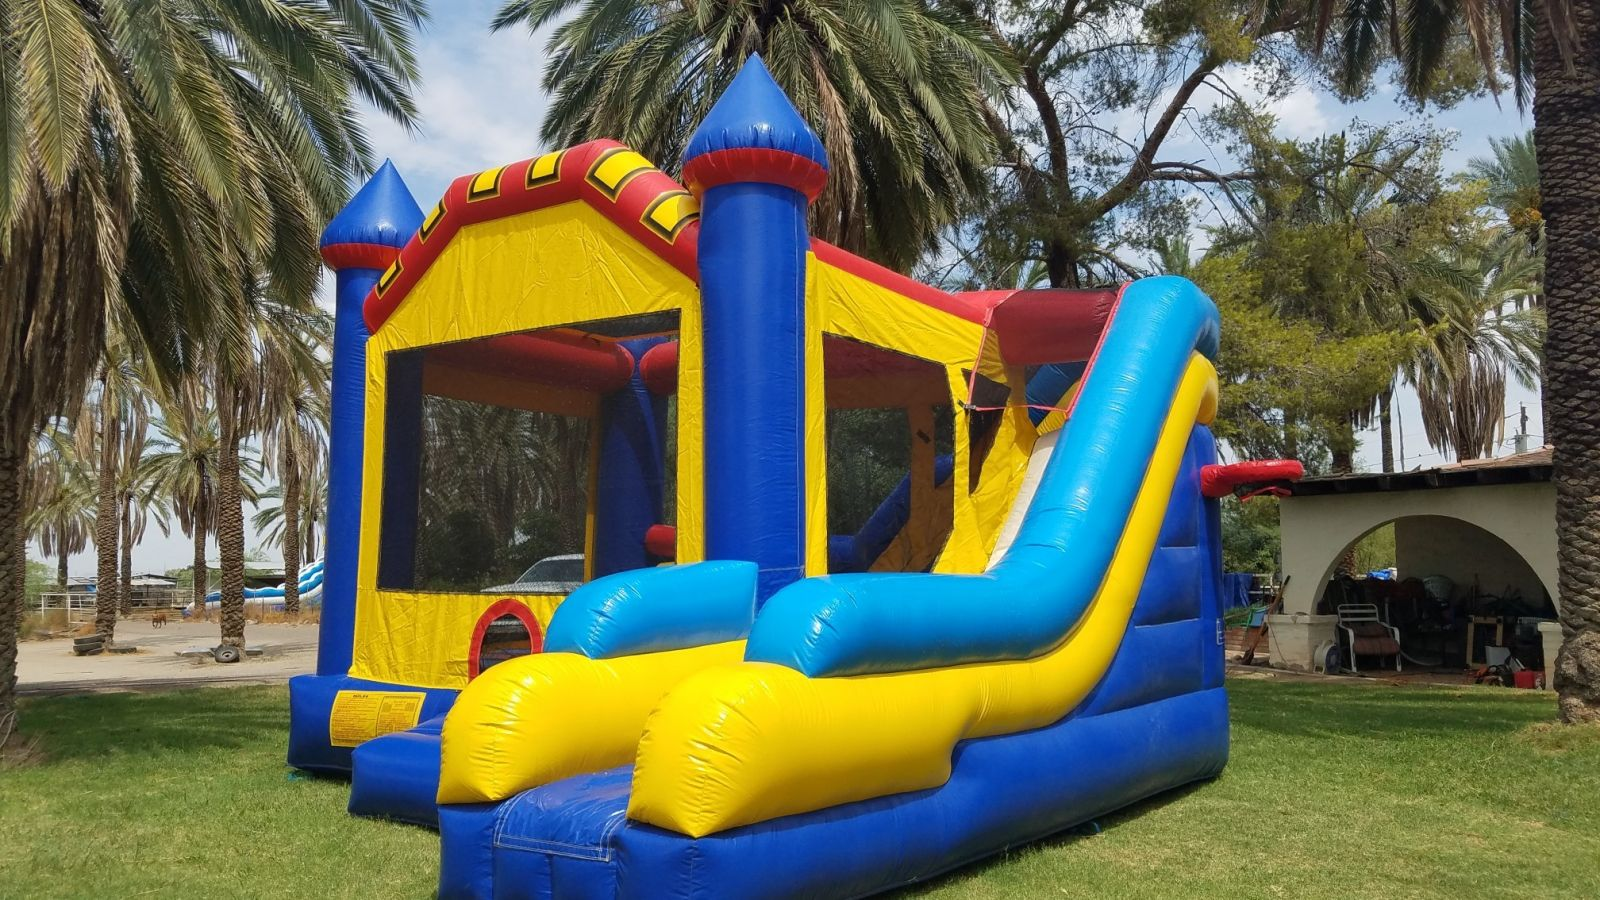 6in1 Blue Bounce Slide Combo for Rentin Arizona